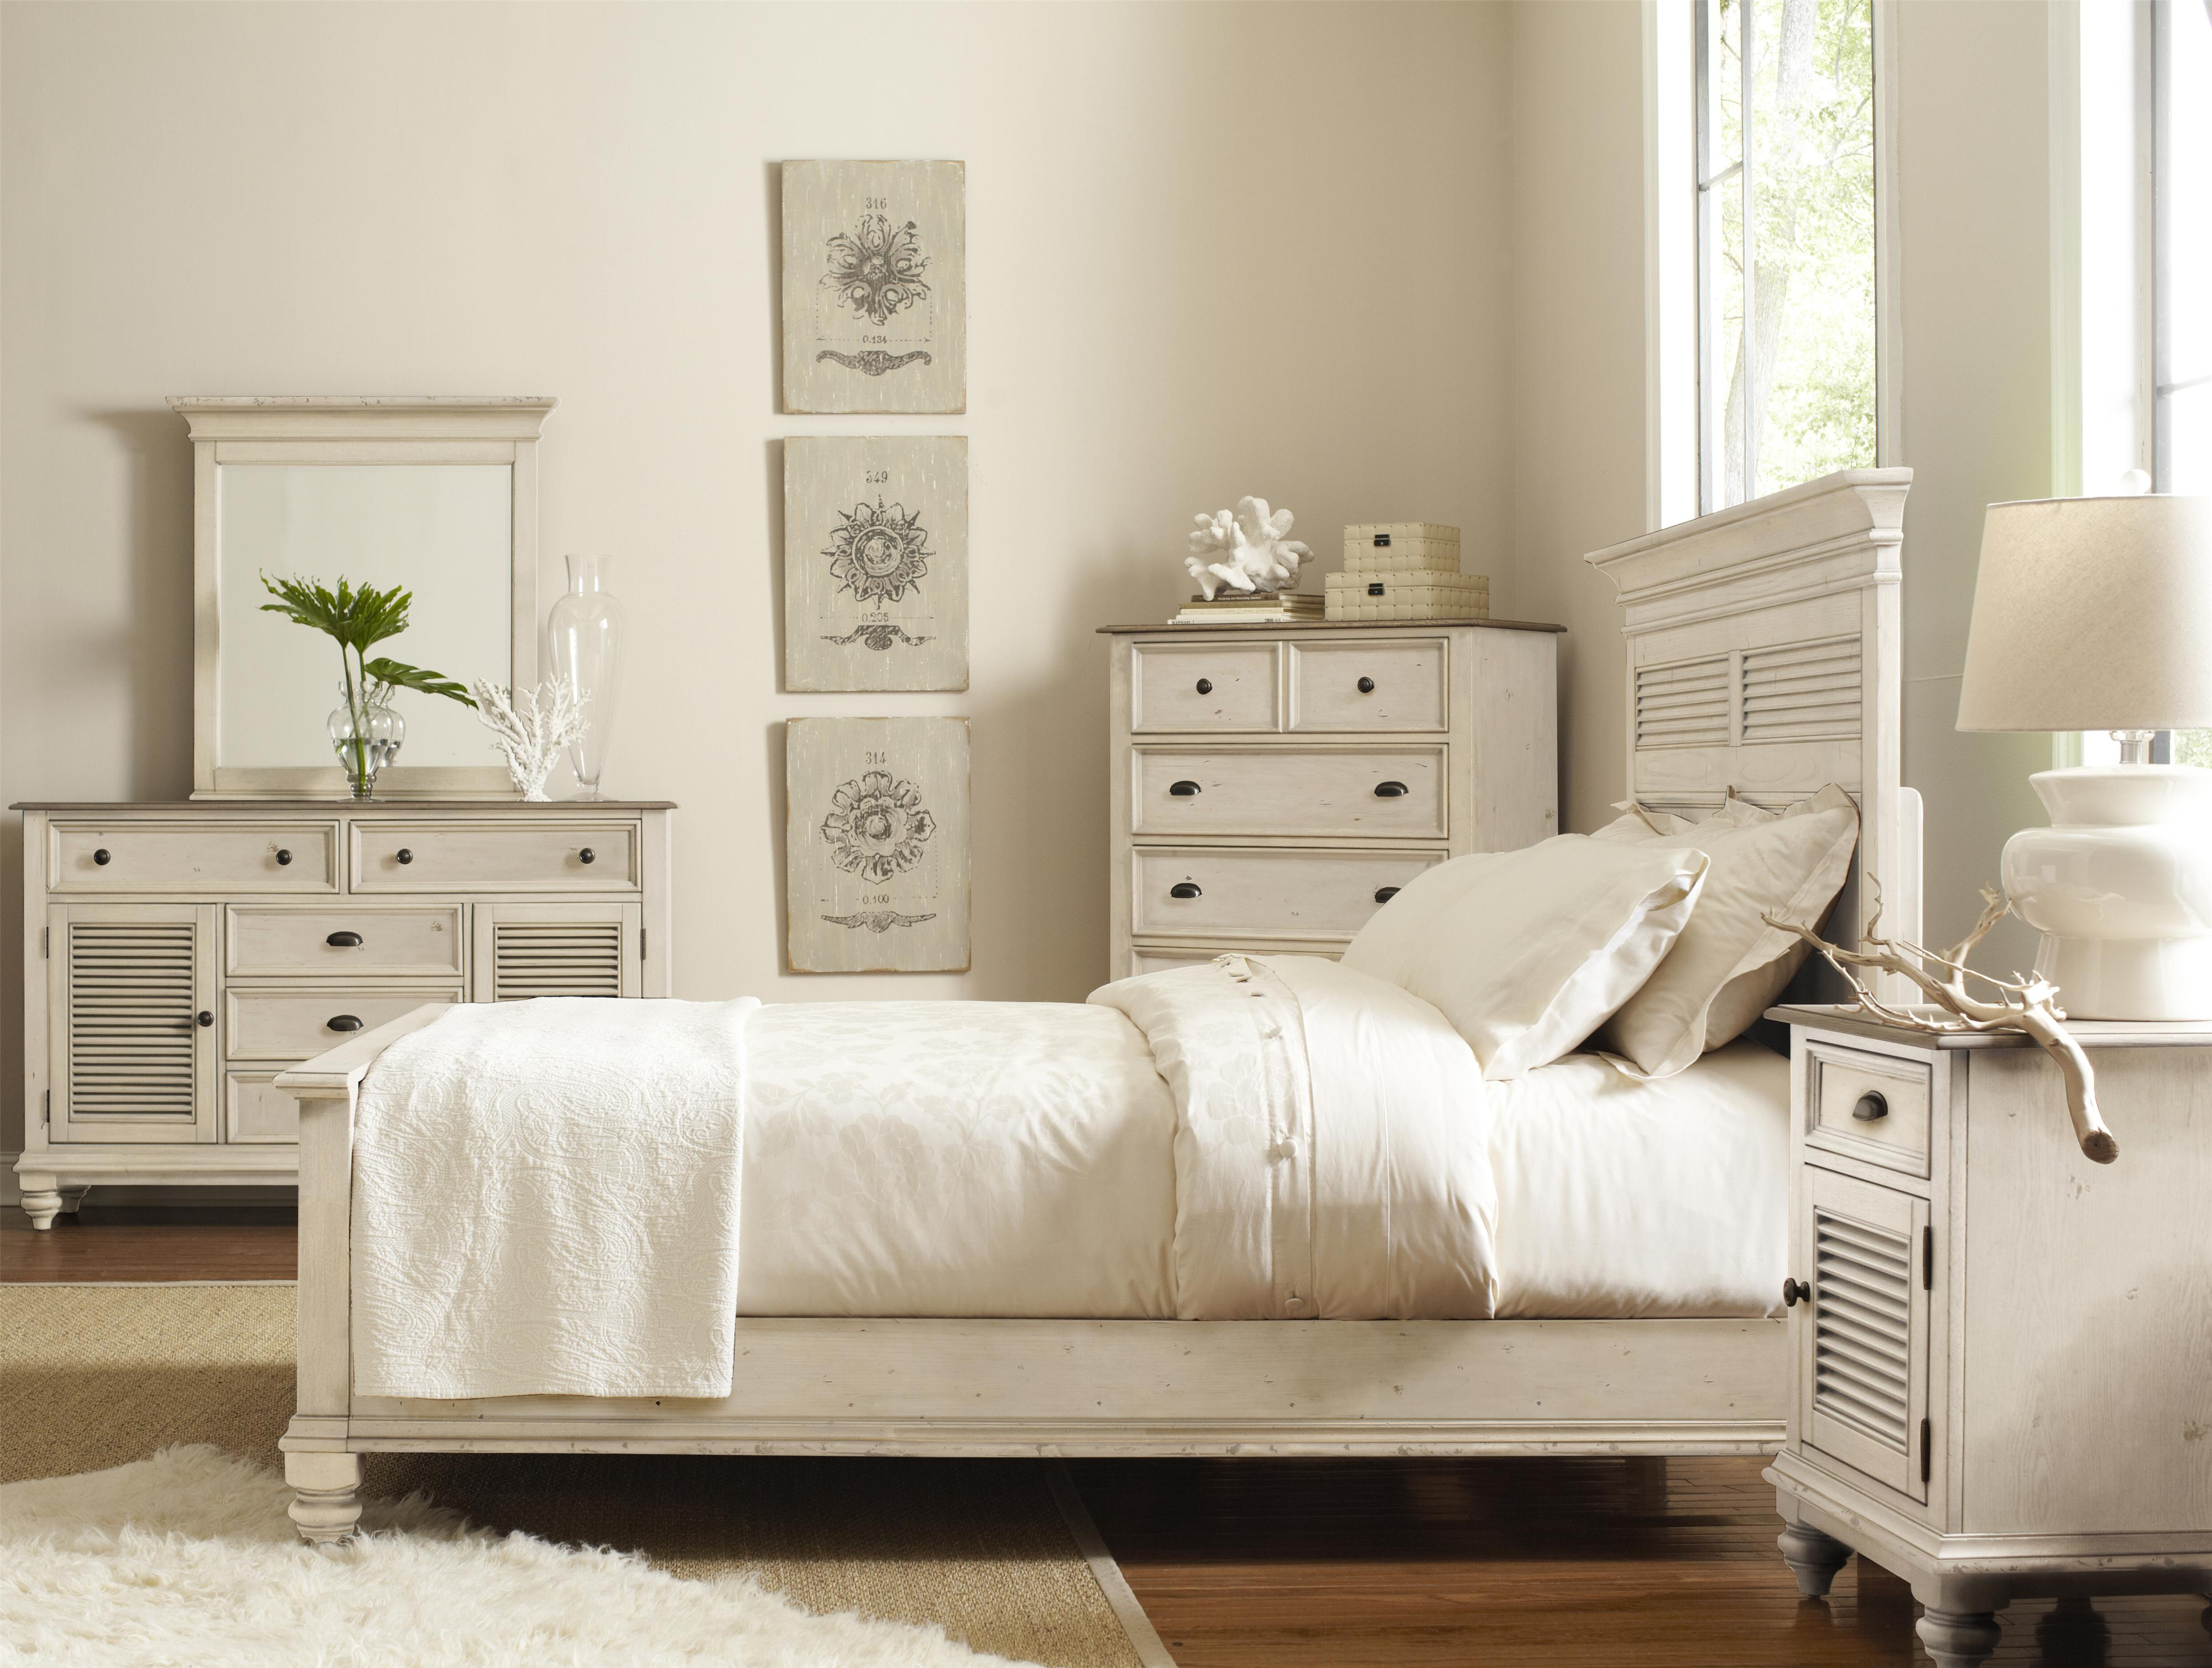 headboards size shabby kids head unnamed furniture bedroom covered picture color designs from affordable upholstered ideas headboard file trim via tufted wood design chic with boards fabric of idea king coventry products contemporary ifurn riverside full queen